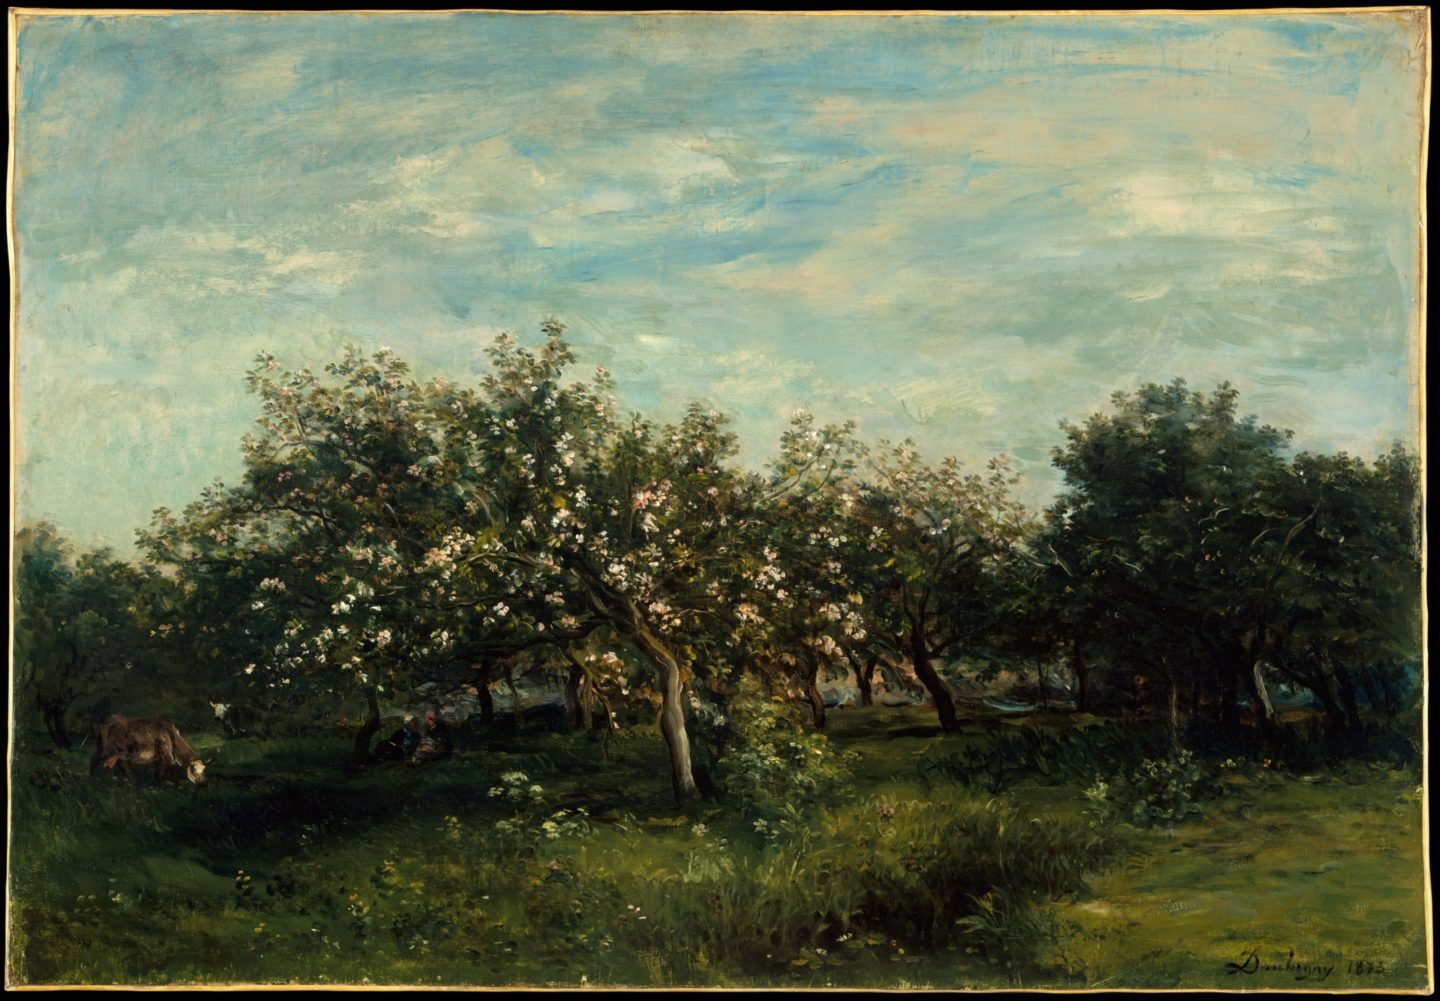 "<p>Image: Charles-François Daubigny, <em>Apple Blossoms</em> (1877) via the <a href=""https://www.metmuseum.org/art/collection/search/436085?searchField=All&amp;sortBy=Relevance&amp;ft=apple&amp;offset=0&amp;rpp=20&amp;pos=1"">Metropolitan Museum of&nbsp;Art</a></p>"